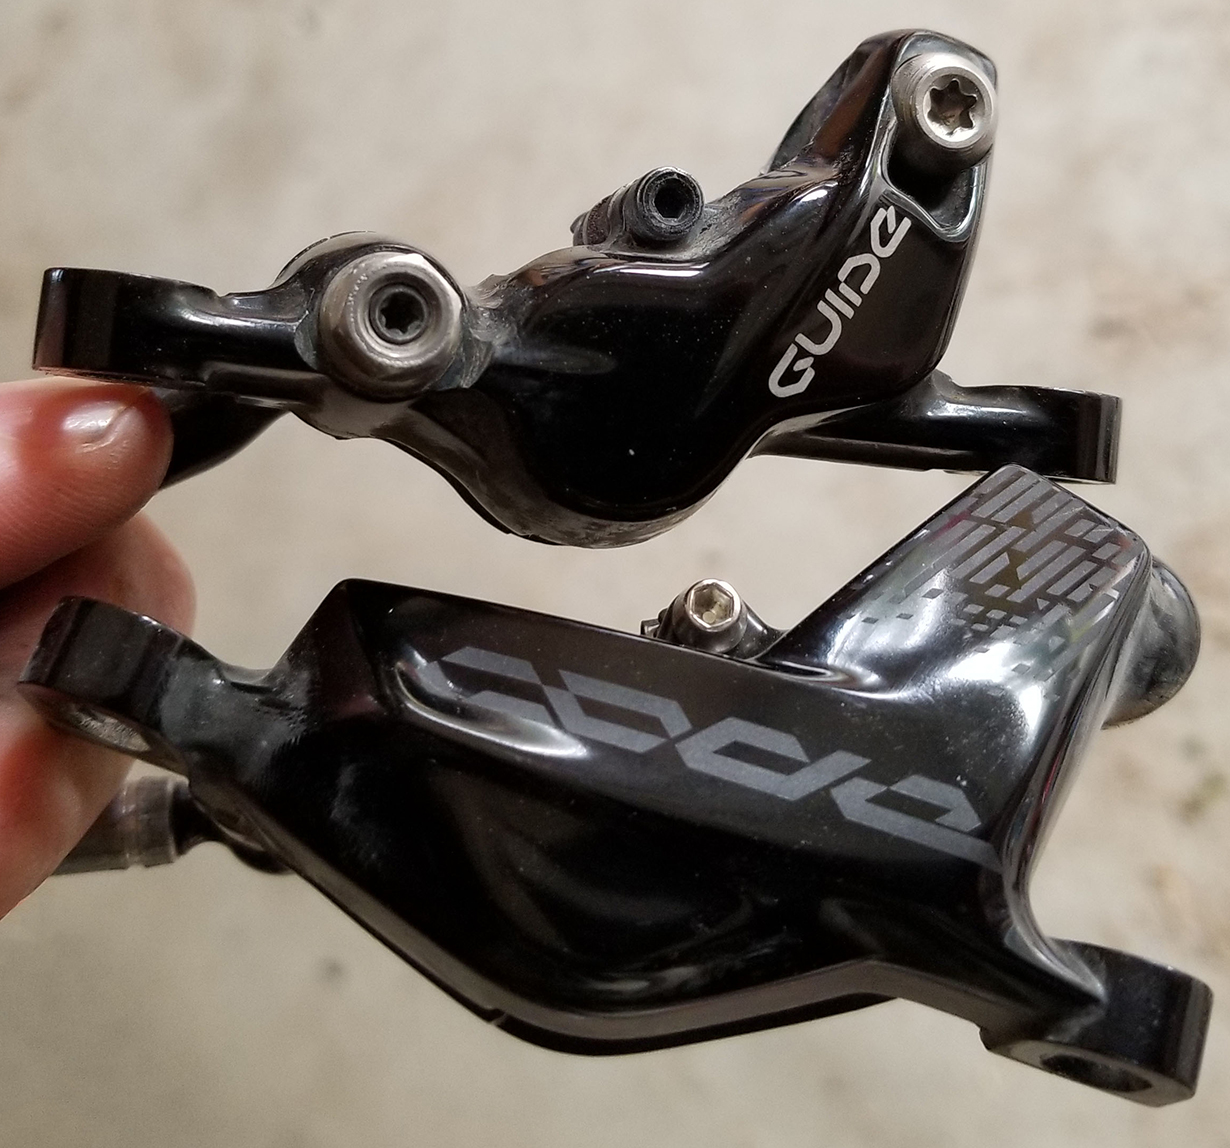 Noah Bodman reviews the SRAM Code RSC brakes for Blister Gear Review